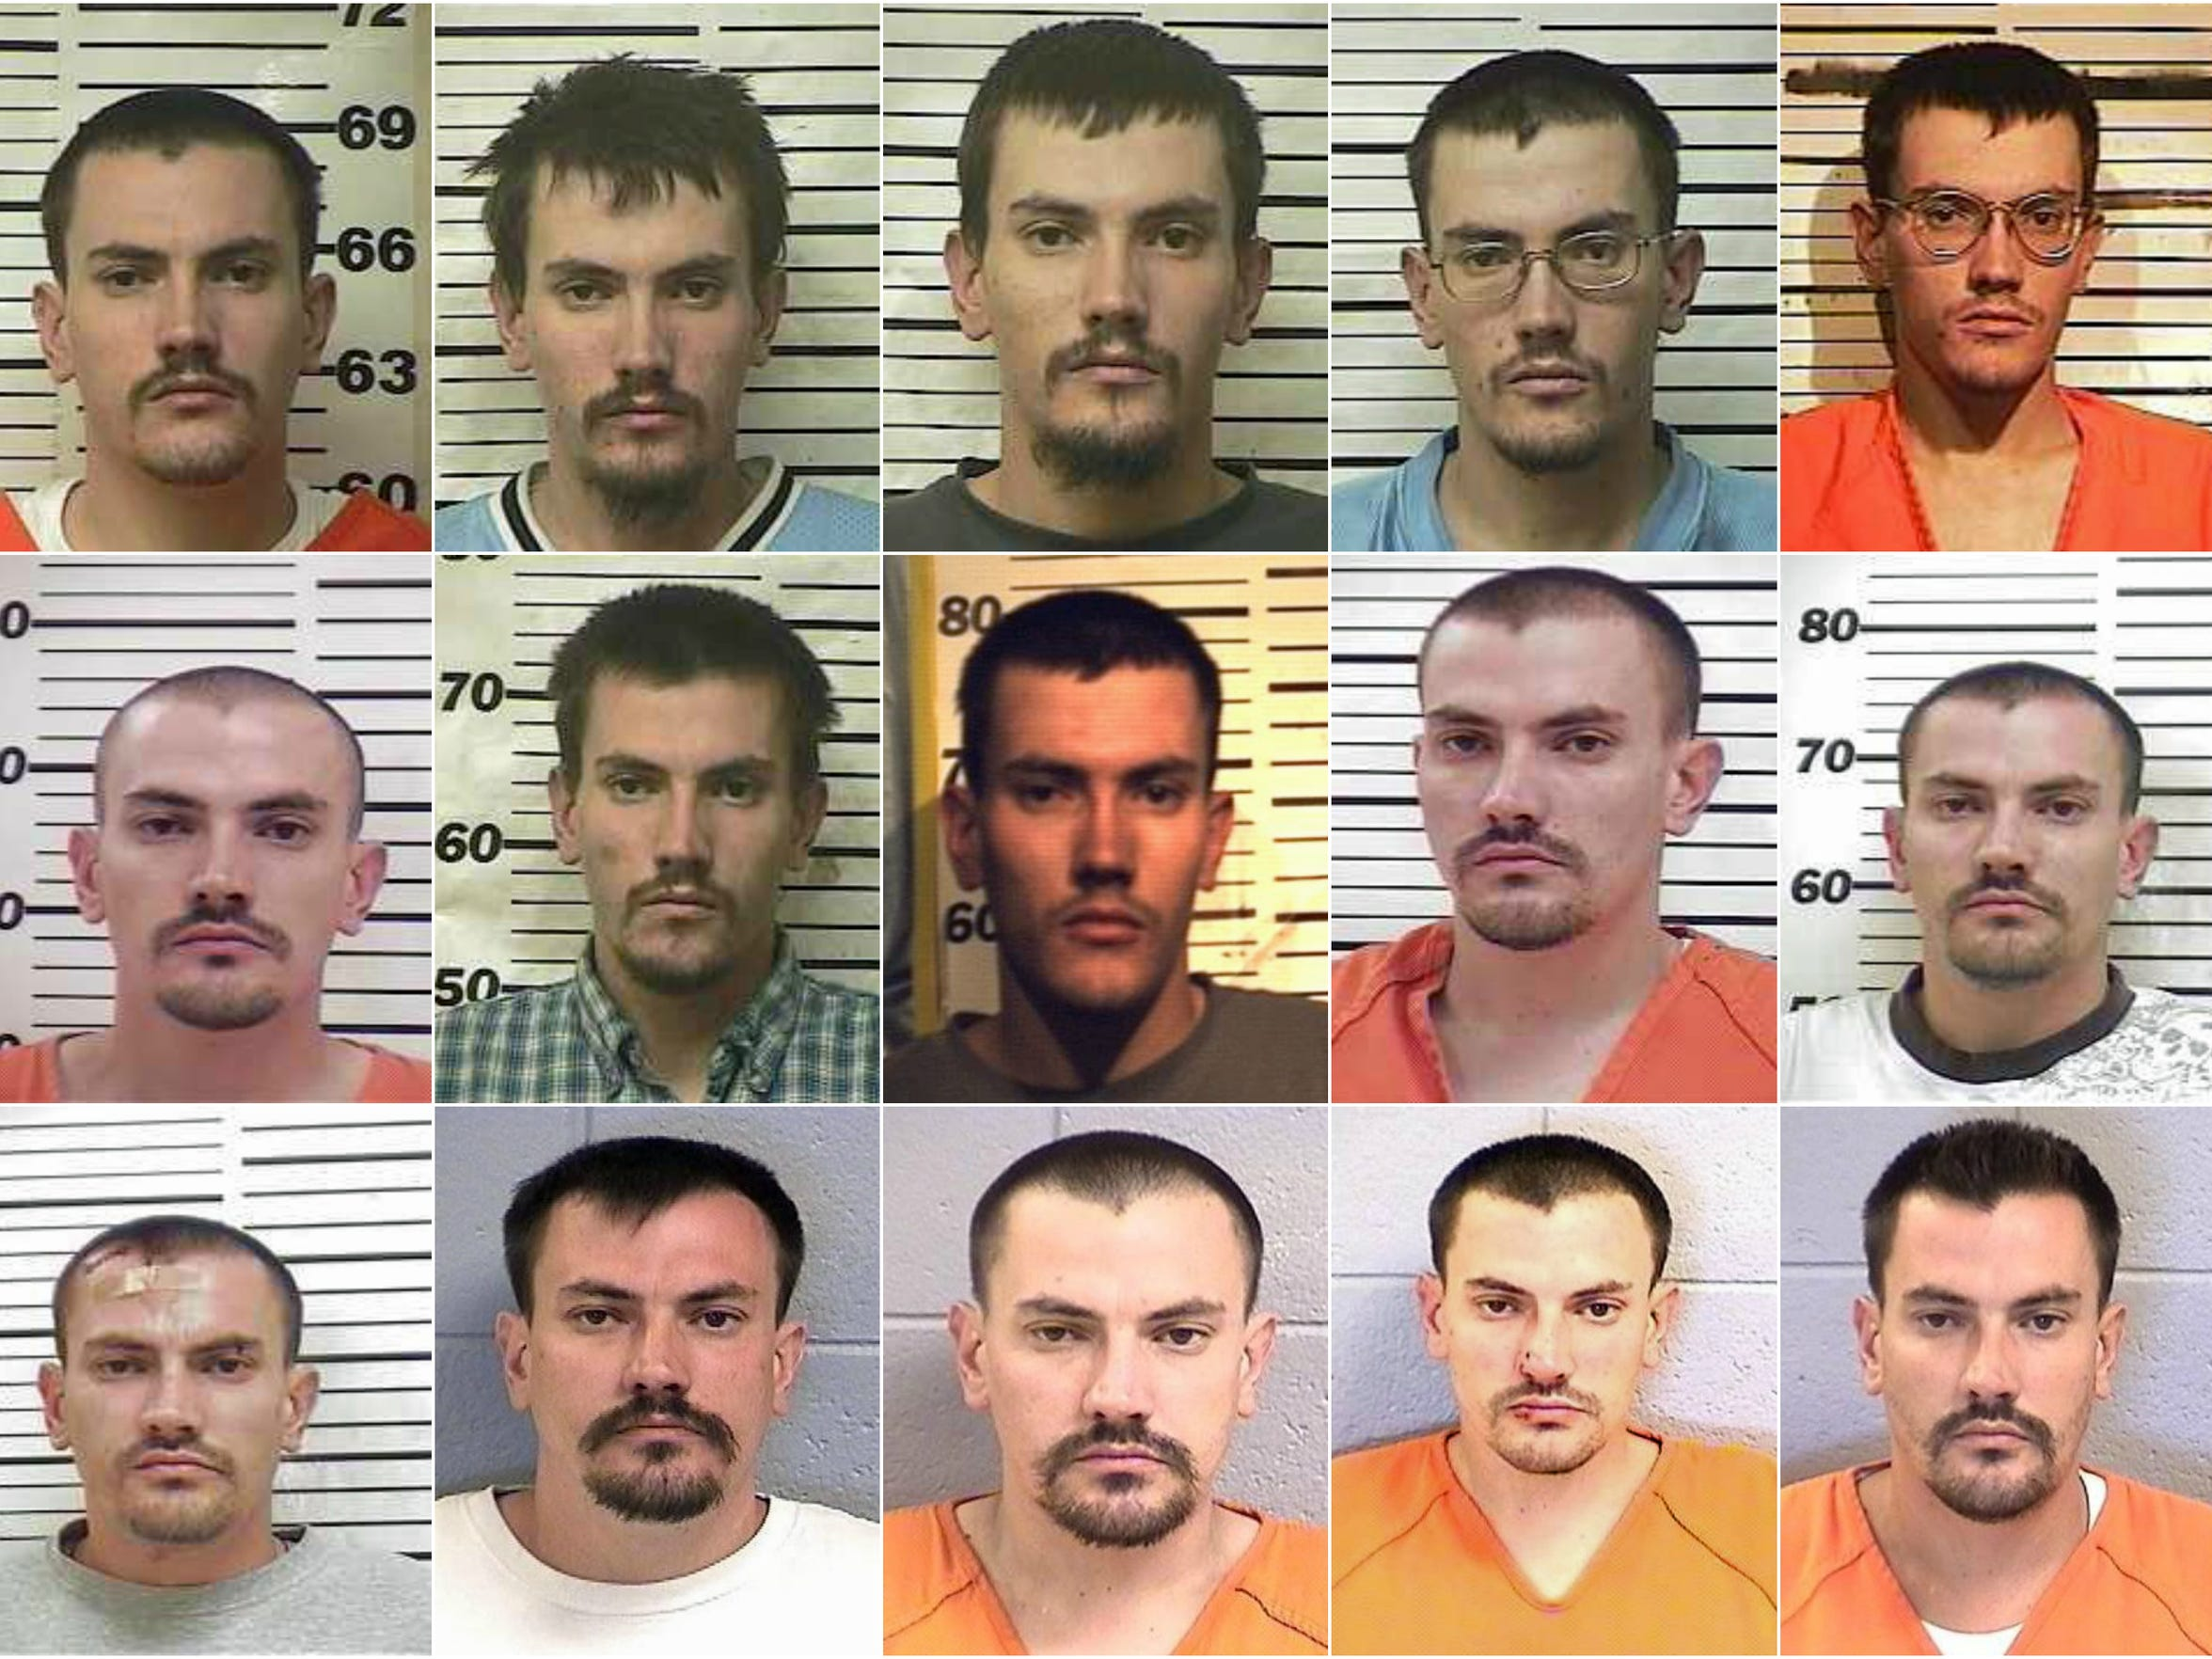 Mugshots provided by the San Juan County Adult Detention Center depict Matthew Harrison's booking photos from 2001 to 2015.